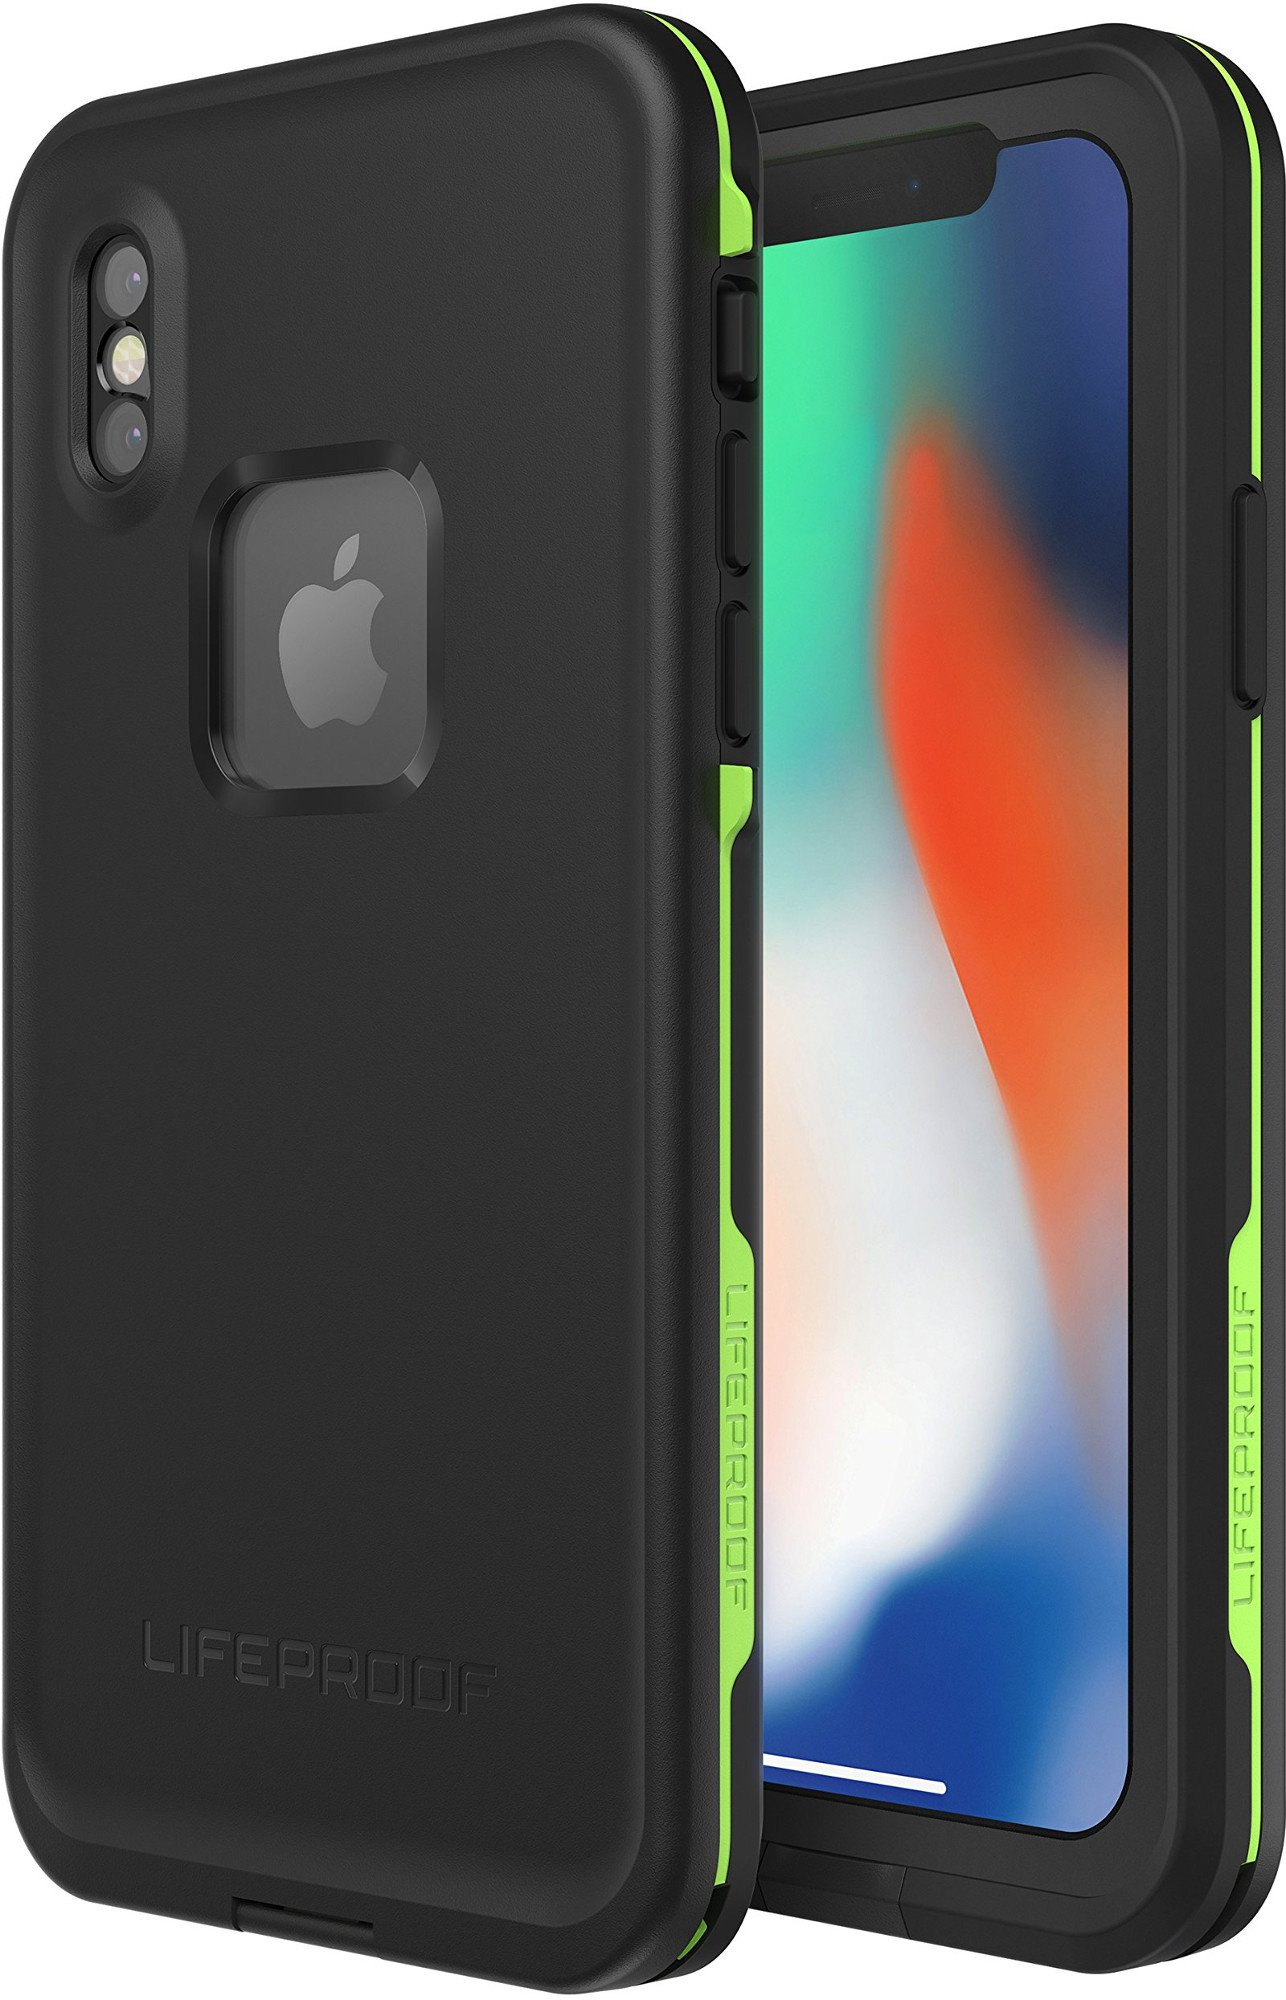 Lifeproof FRĒ SERIES Waterproof Case for iPhone X (ONLY) - Retail Packaging - NIGHT LITE (BLACK/LIME) by LifeProof (Image #2)